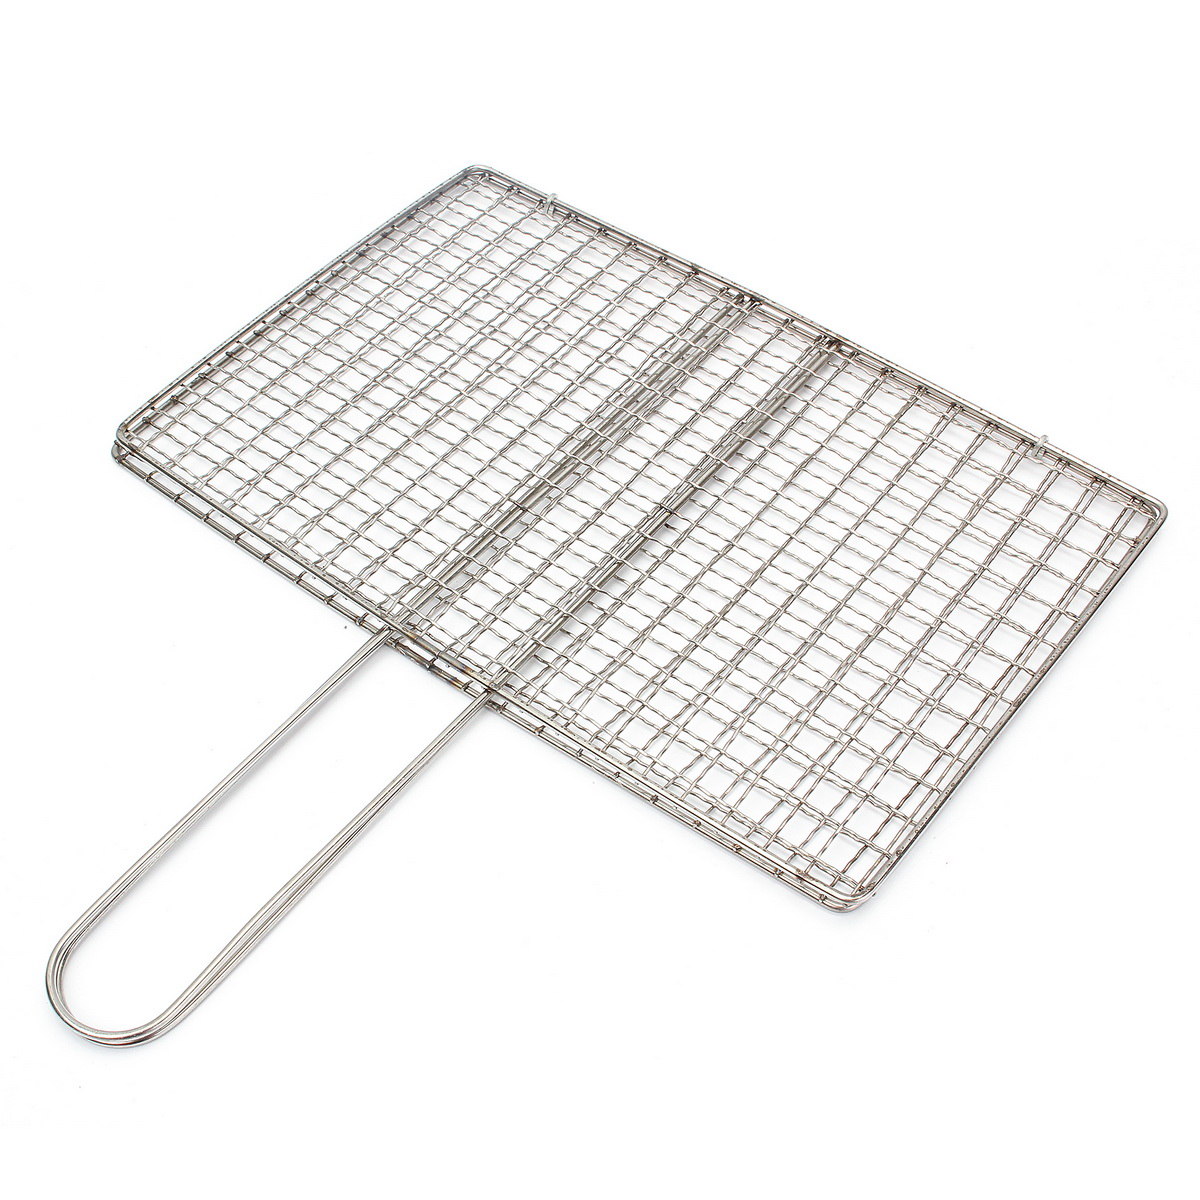 Outdoor Picnic Bbq Fish Meat Grill Stainless Steel Net